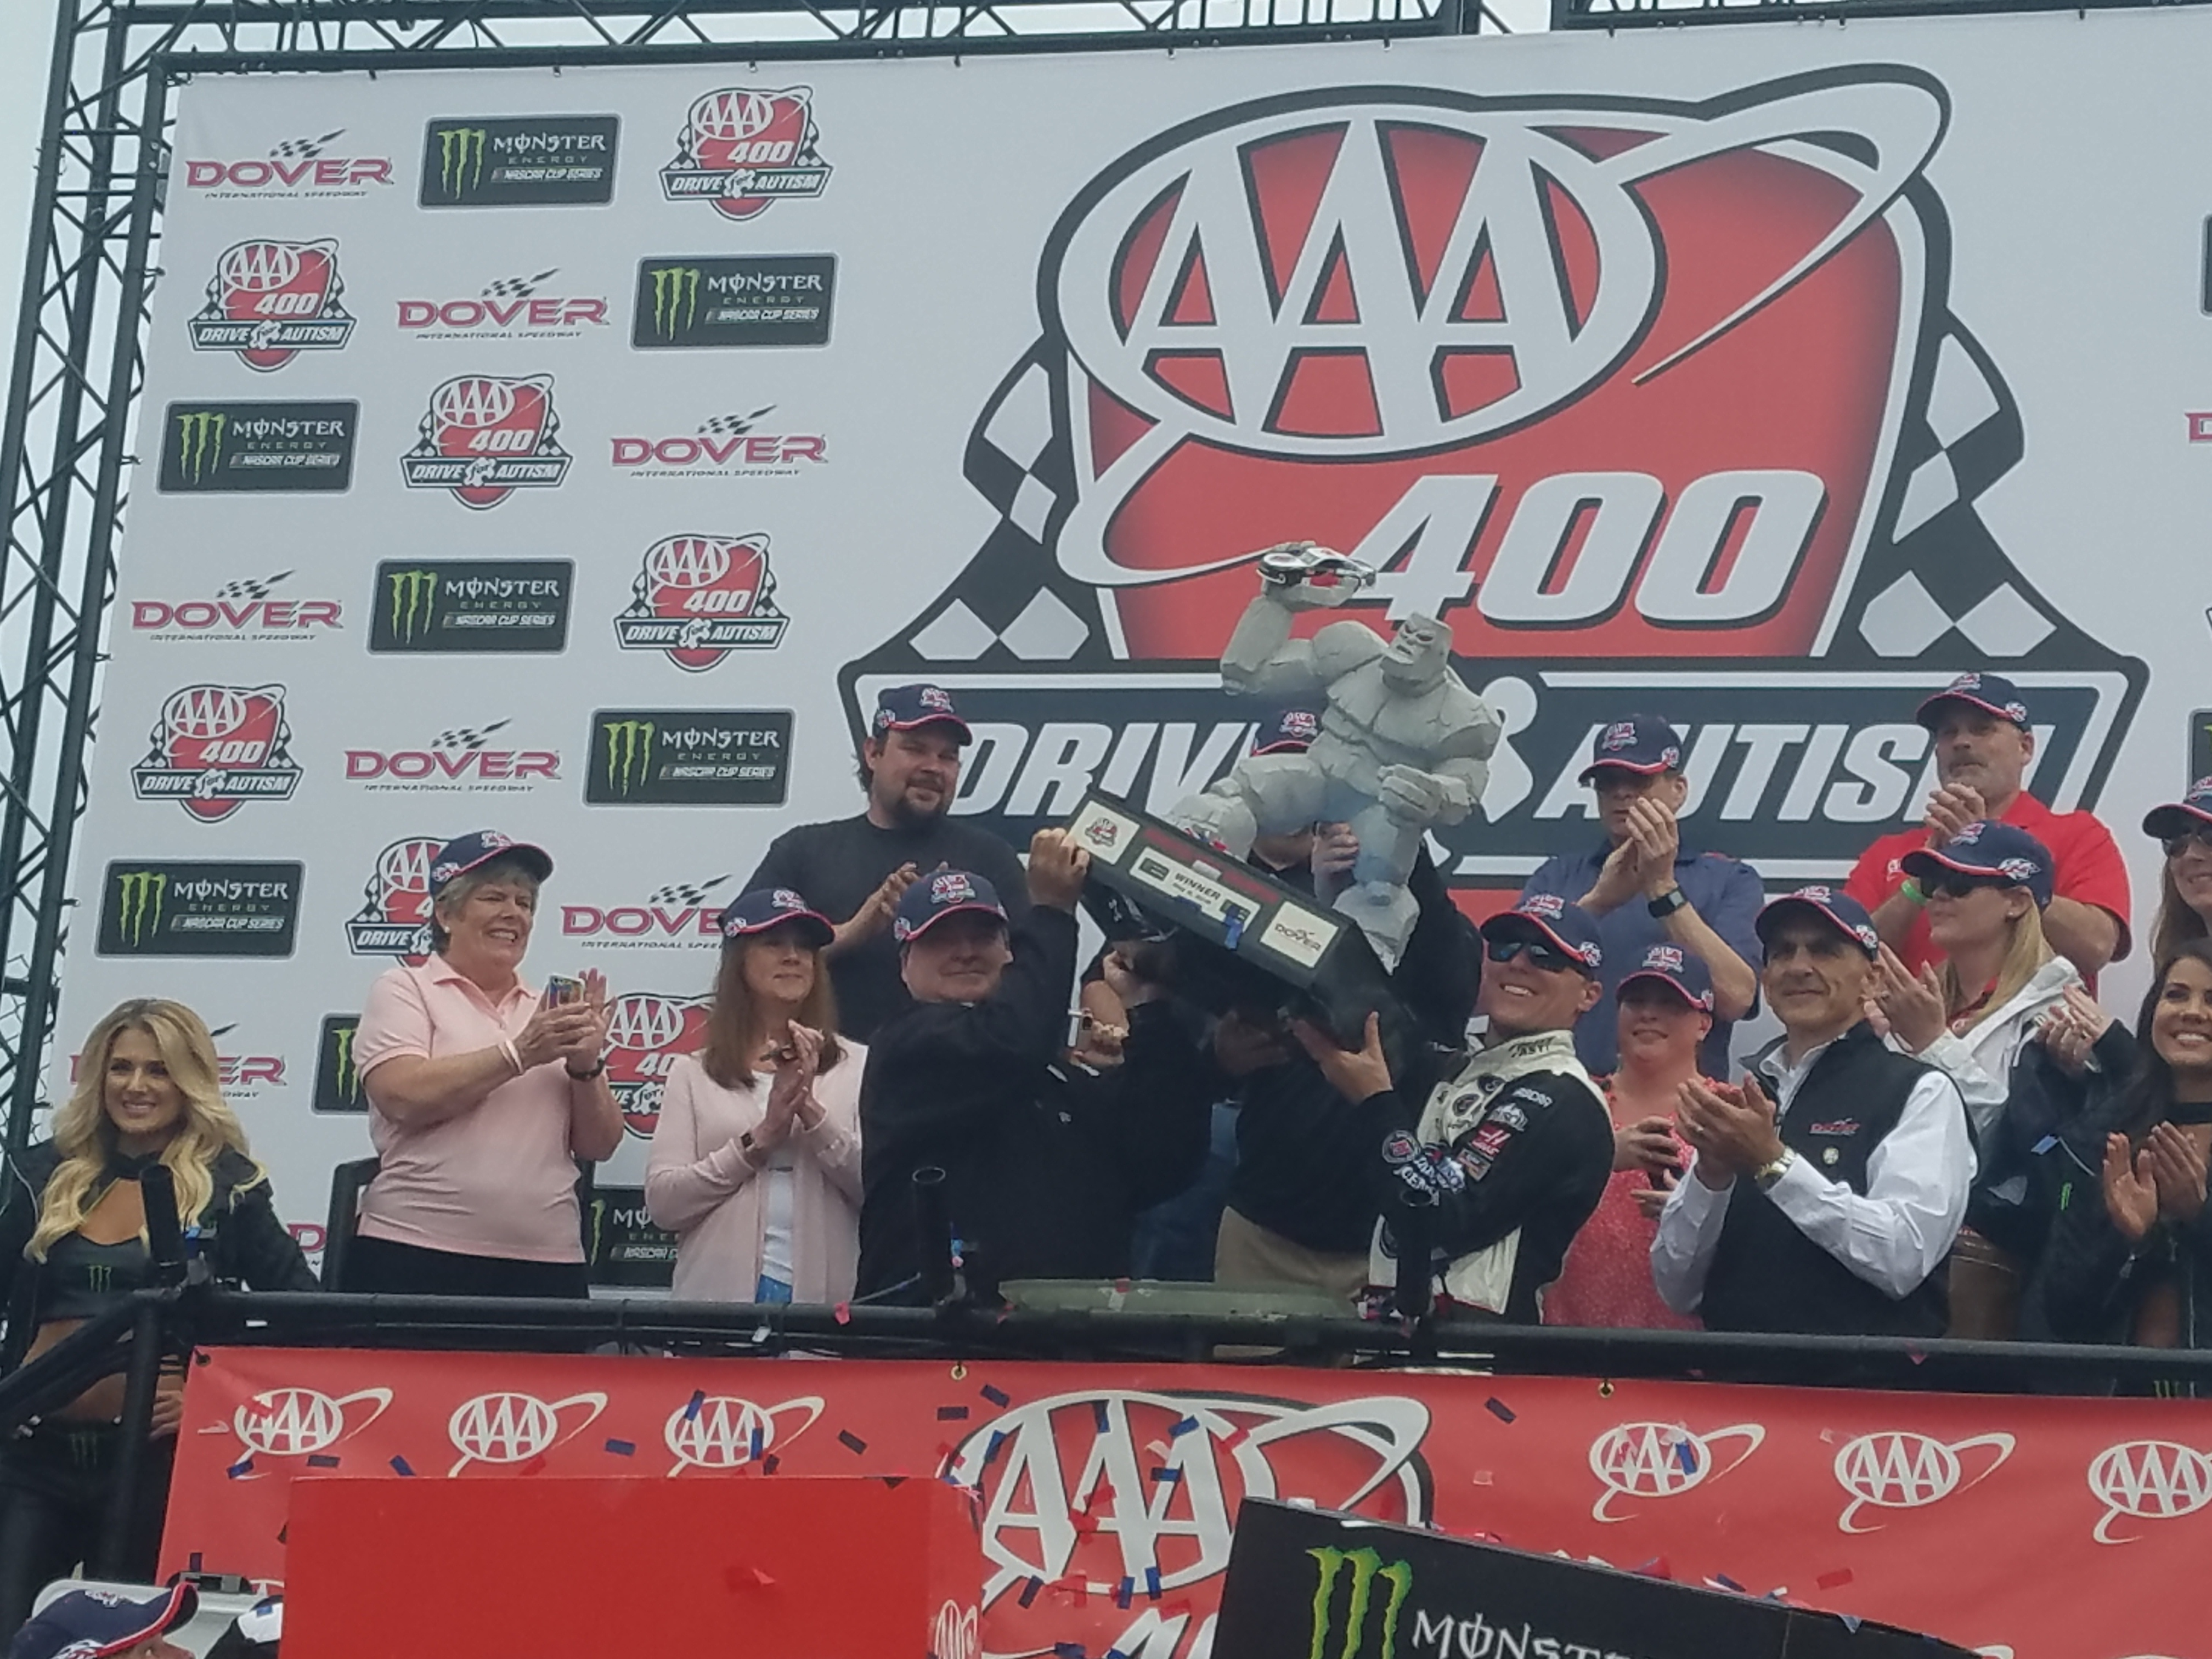 Harvick Dominates At Dover